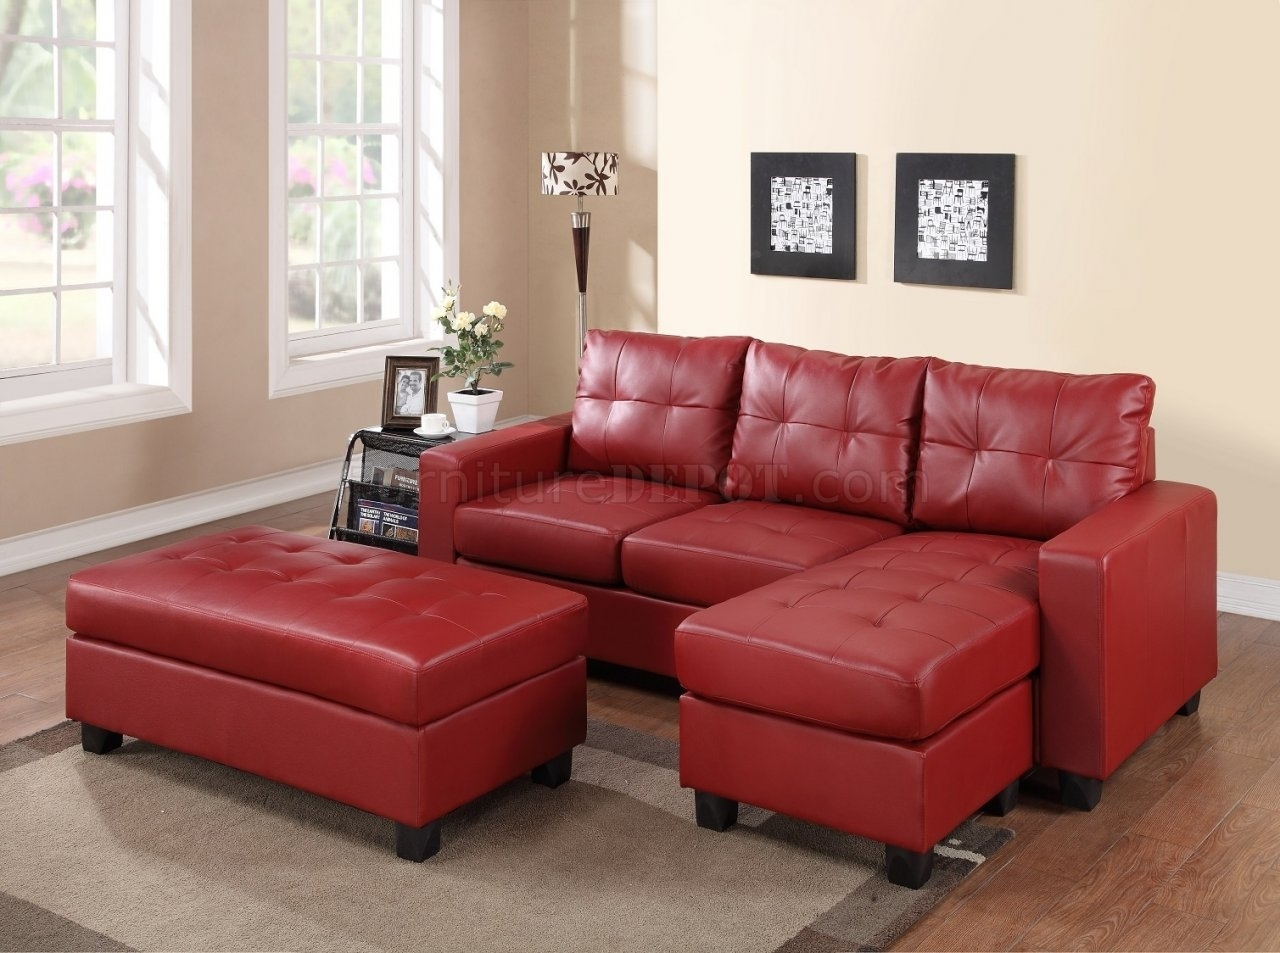 2511 Sectional Sofa Set In Red Bonded Leather Match Pu Throughout Red Leather Sectional Sofas With Ottoman (View 7 of 10)